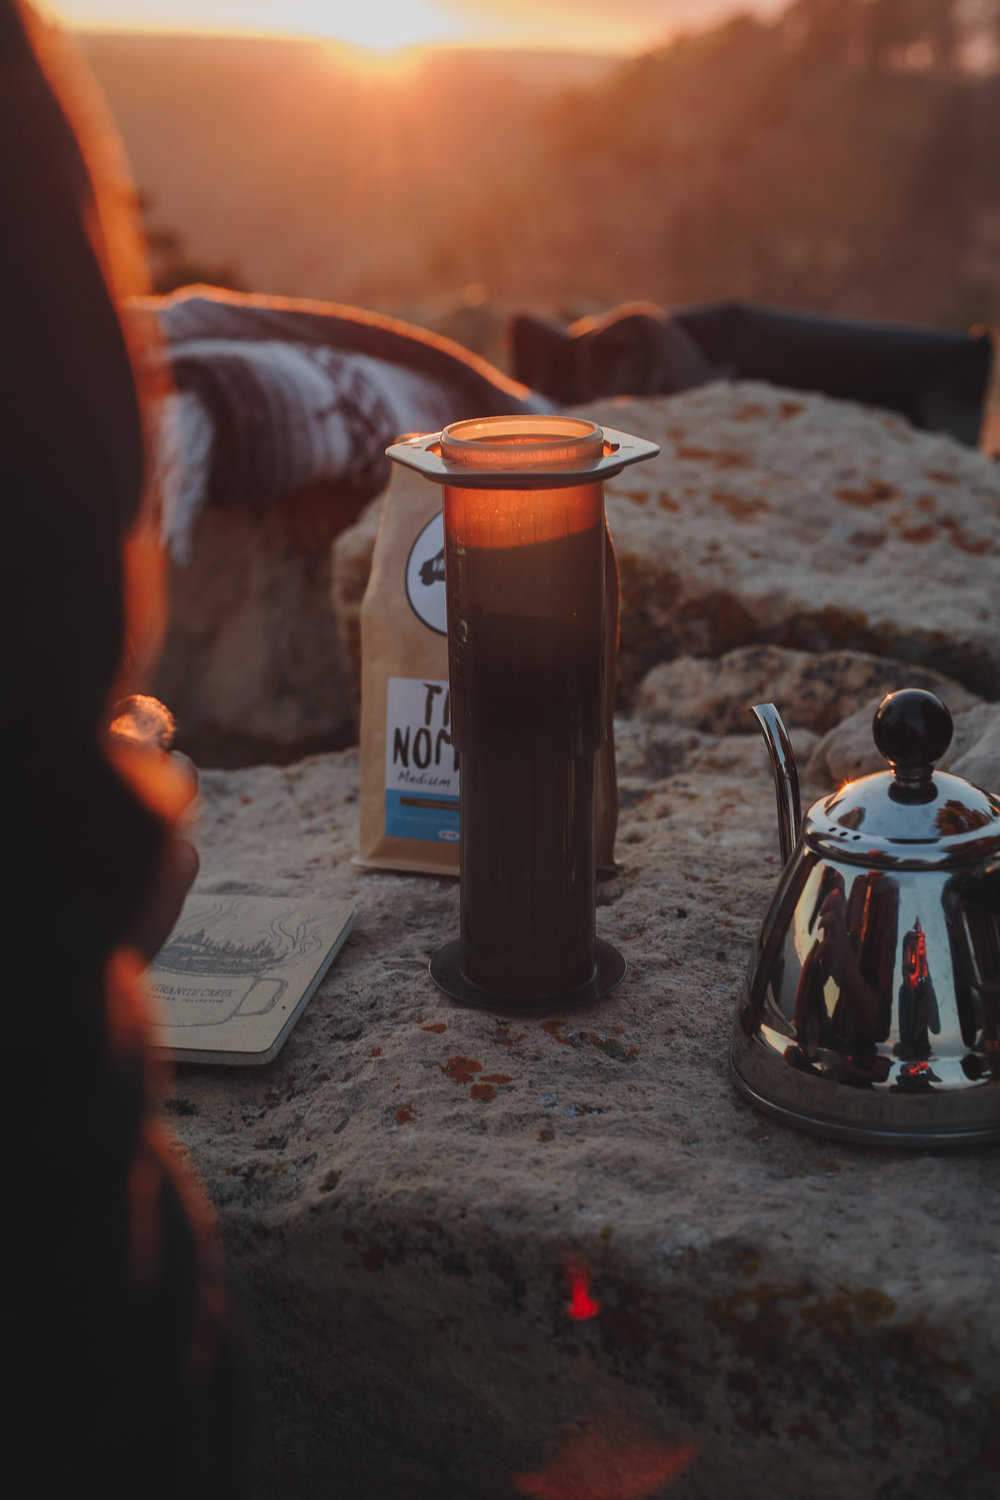 Upside down Aeropress being brewed outdoors